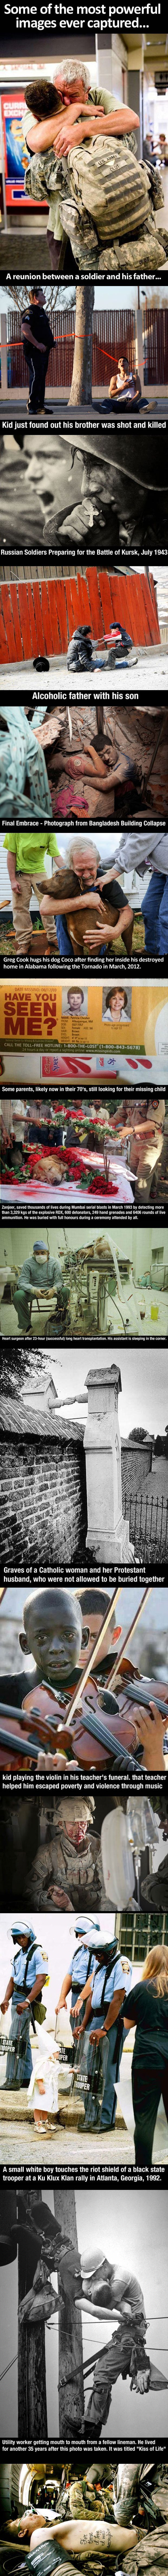 15 Powerful Photographs. I am literally crying.